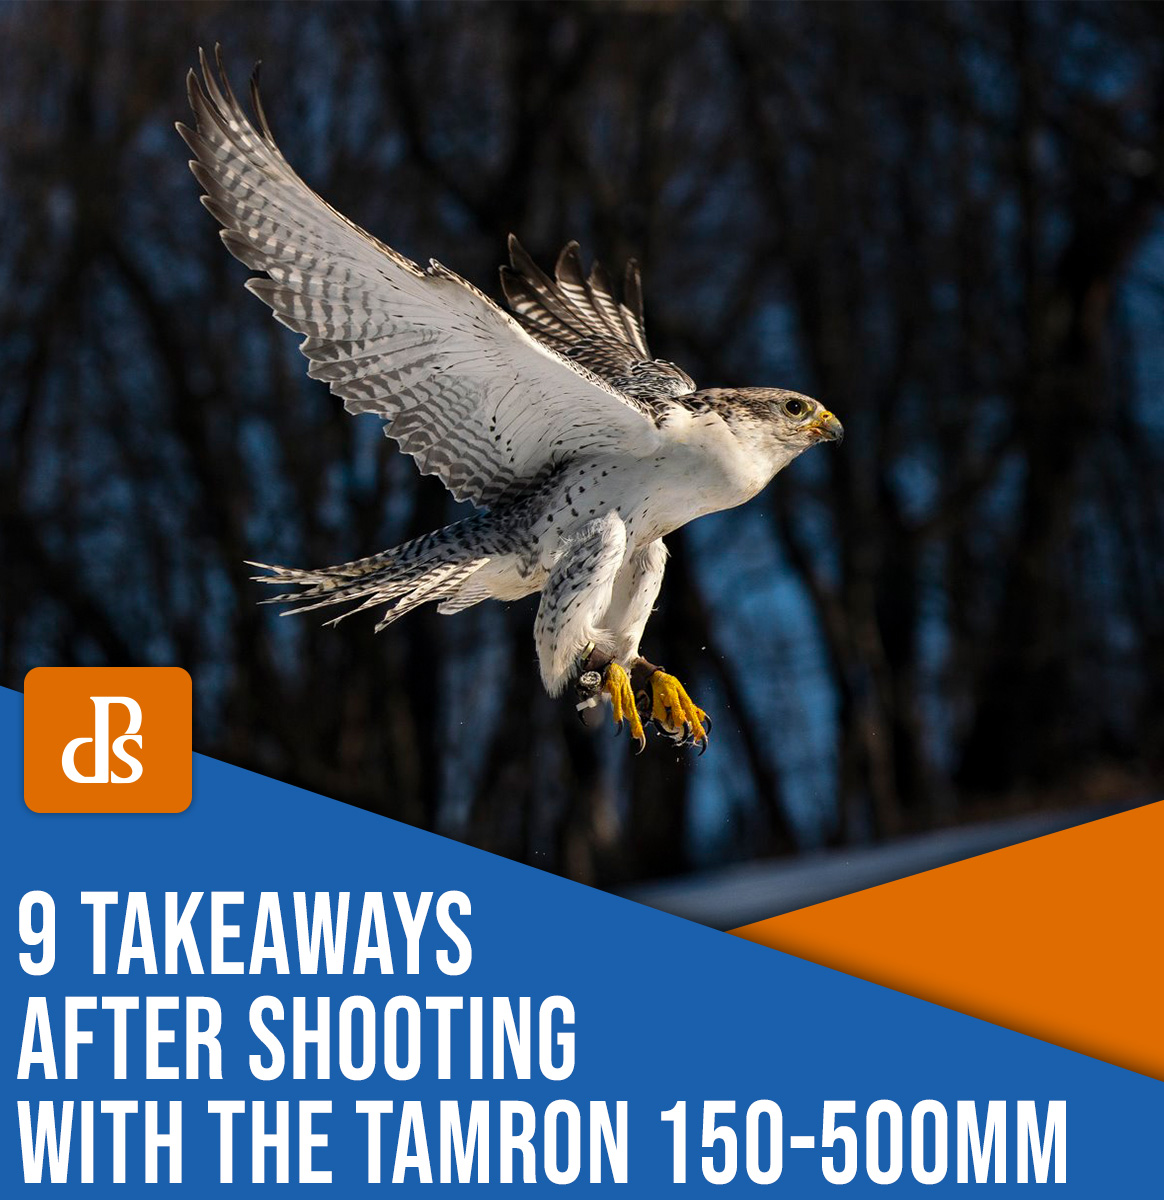 9 takeaways after shooting with the Tamron 150-500mm